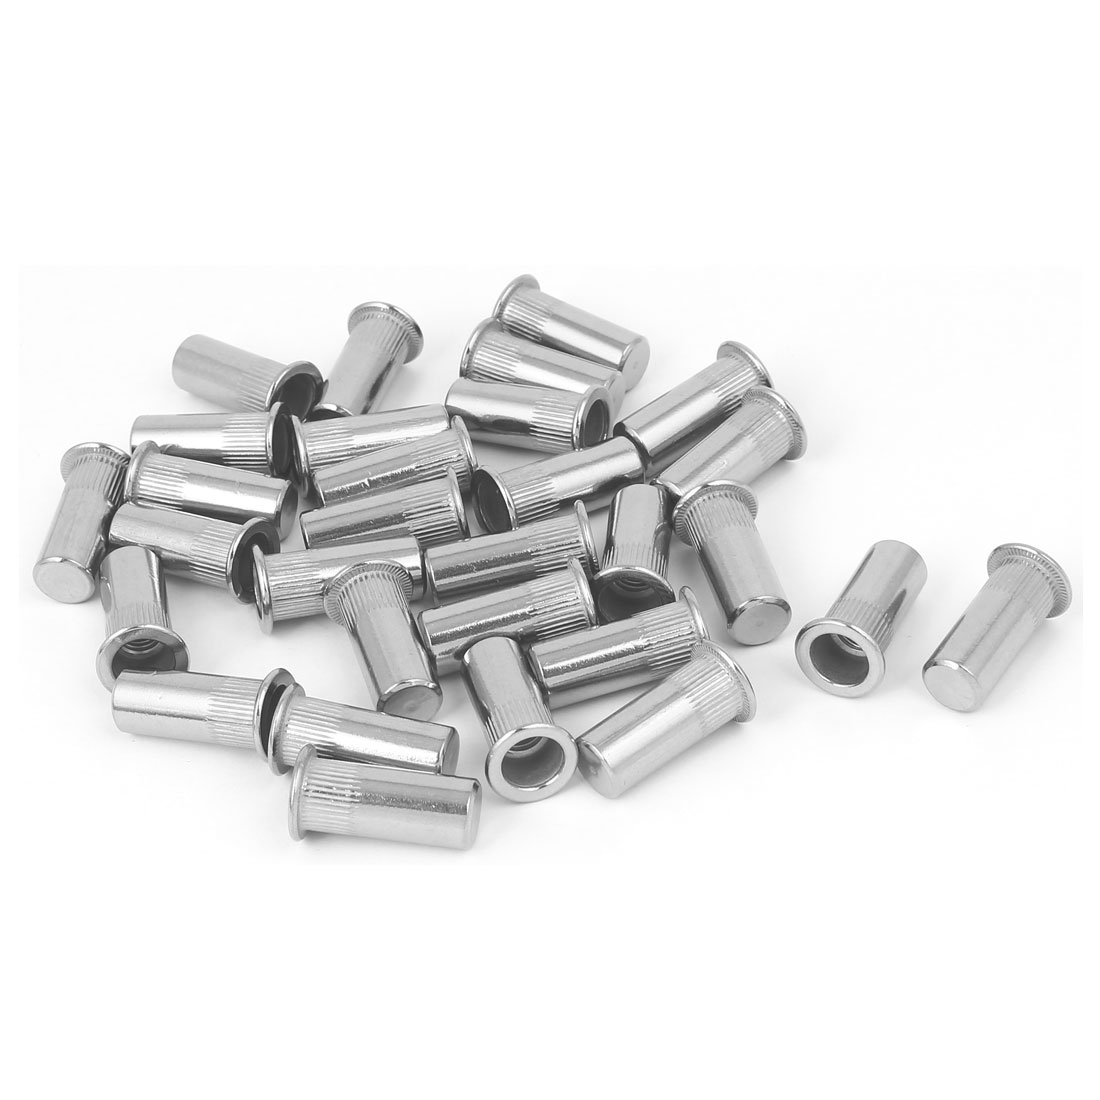 M8x27mm 304 Stainless Steel Straight Knurled Closed End Rivet Nut Fastener 30pcs